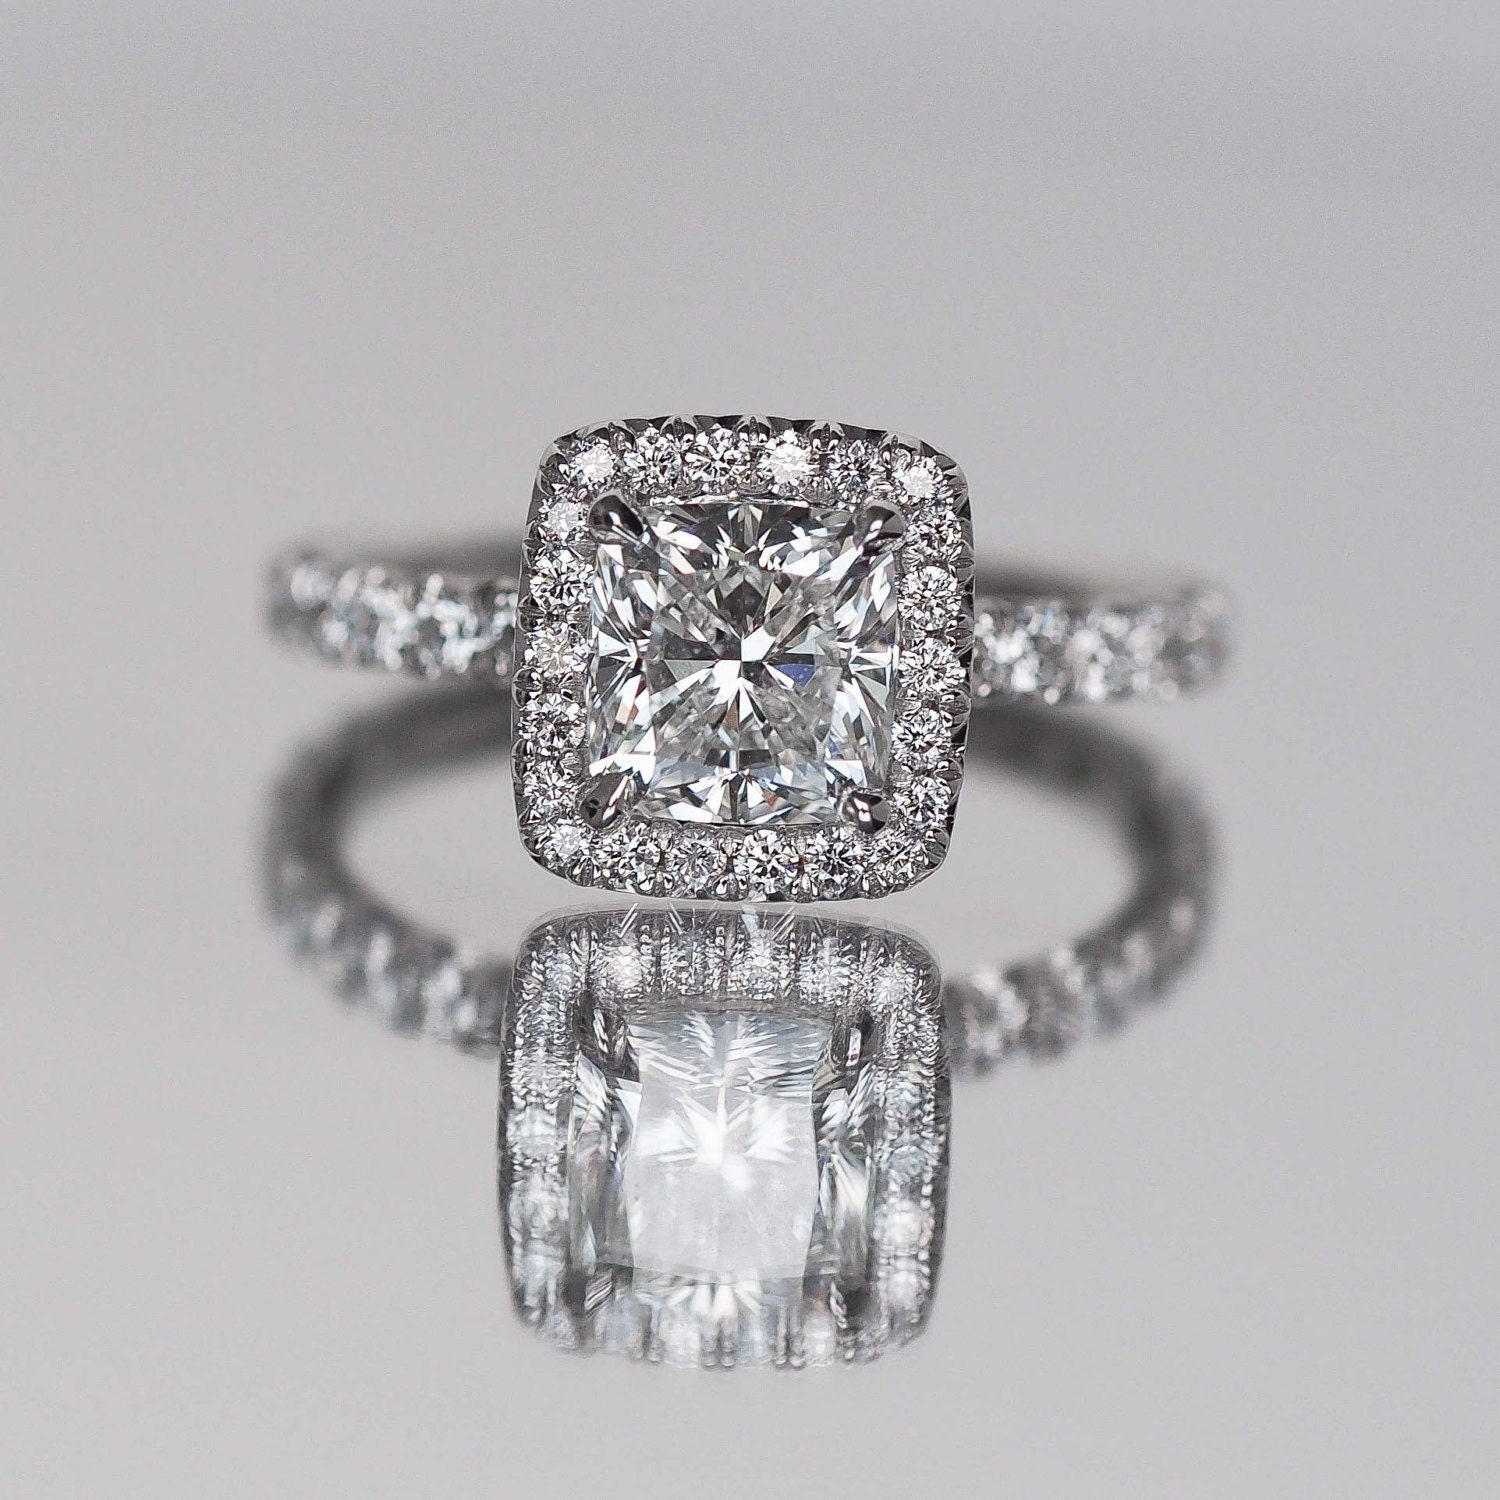 Cushion Cut Engagement Ring with Diamonds on Halo Facing Up